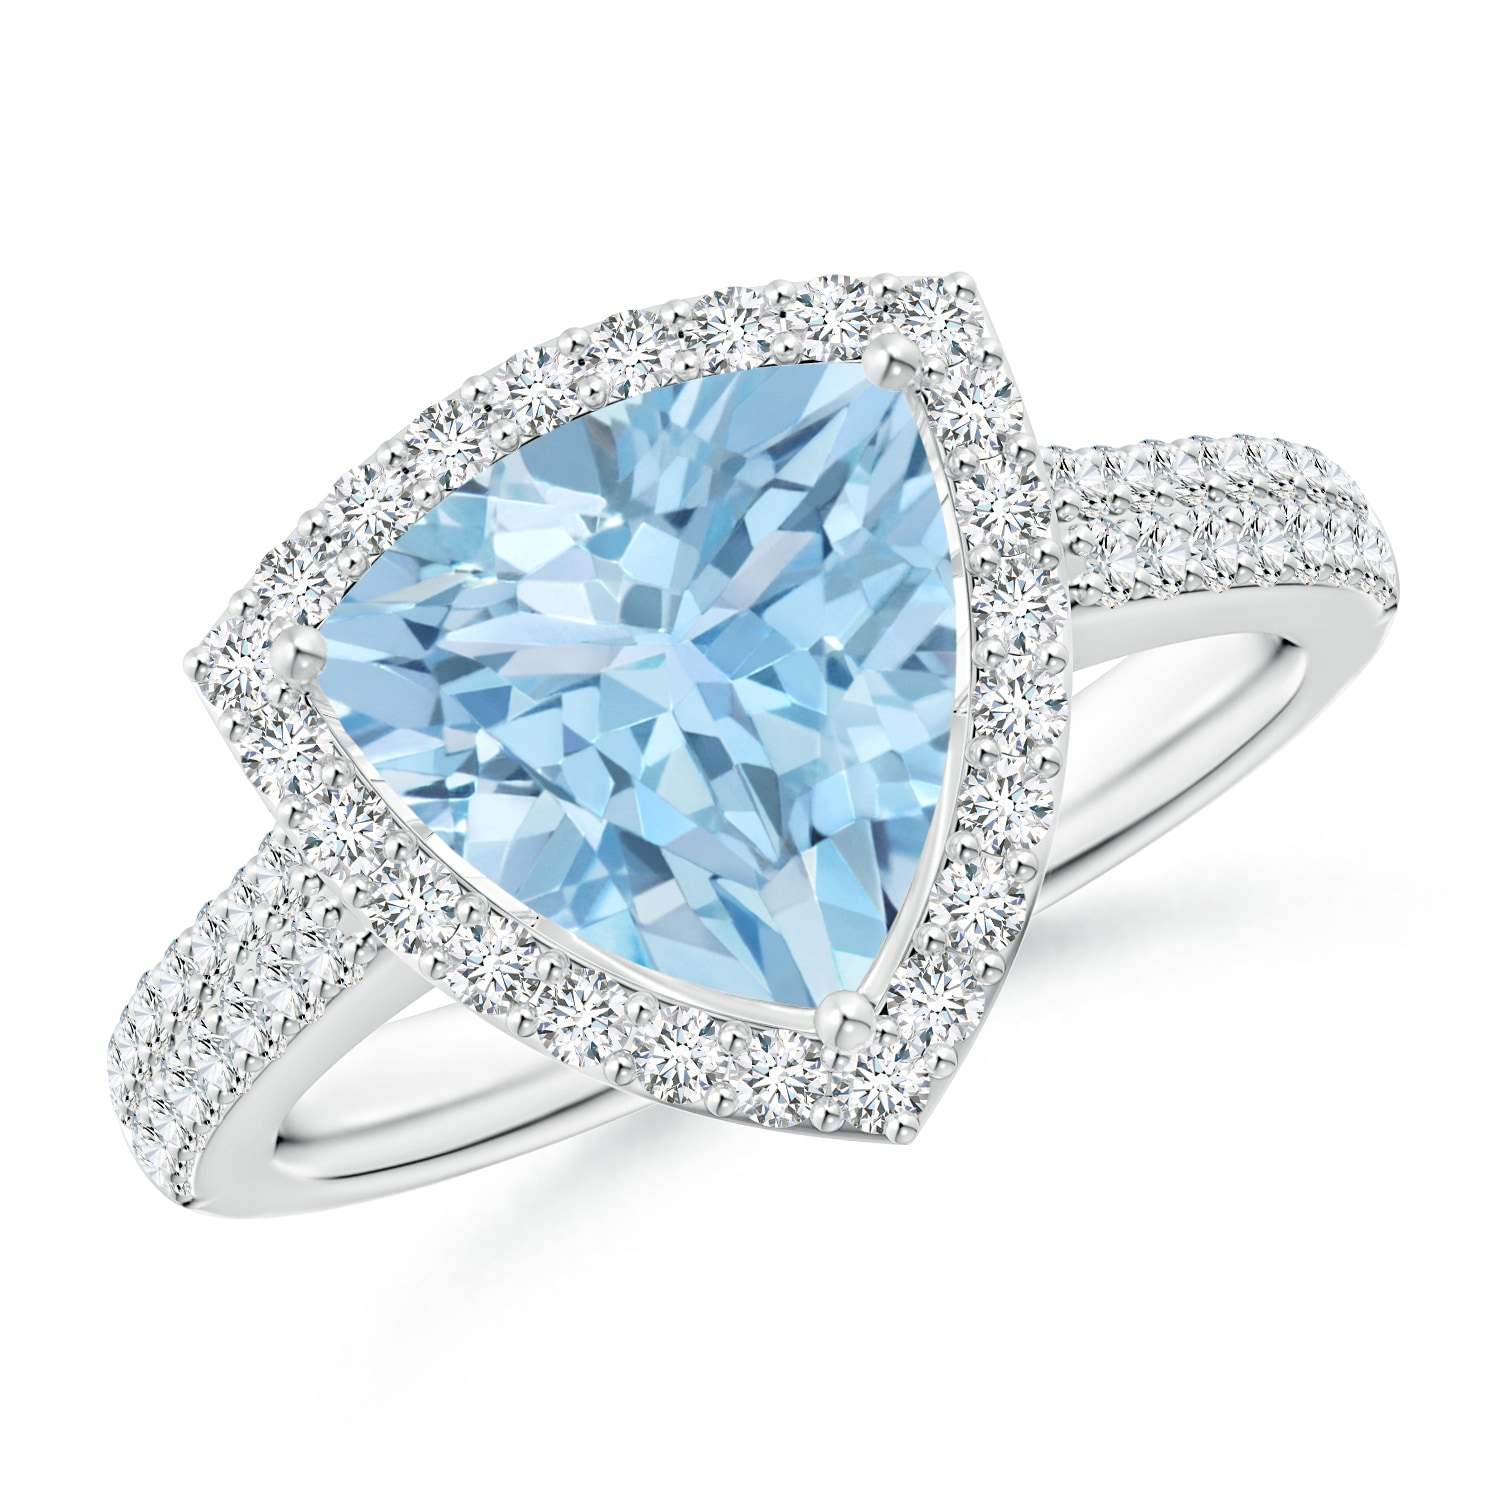 Trillion Aquamarine Cocktail Halo Ring With Diamond Accents Pertaining To Most Recent Sparkling Halo Rings (Gallery 22 of 25)